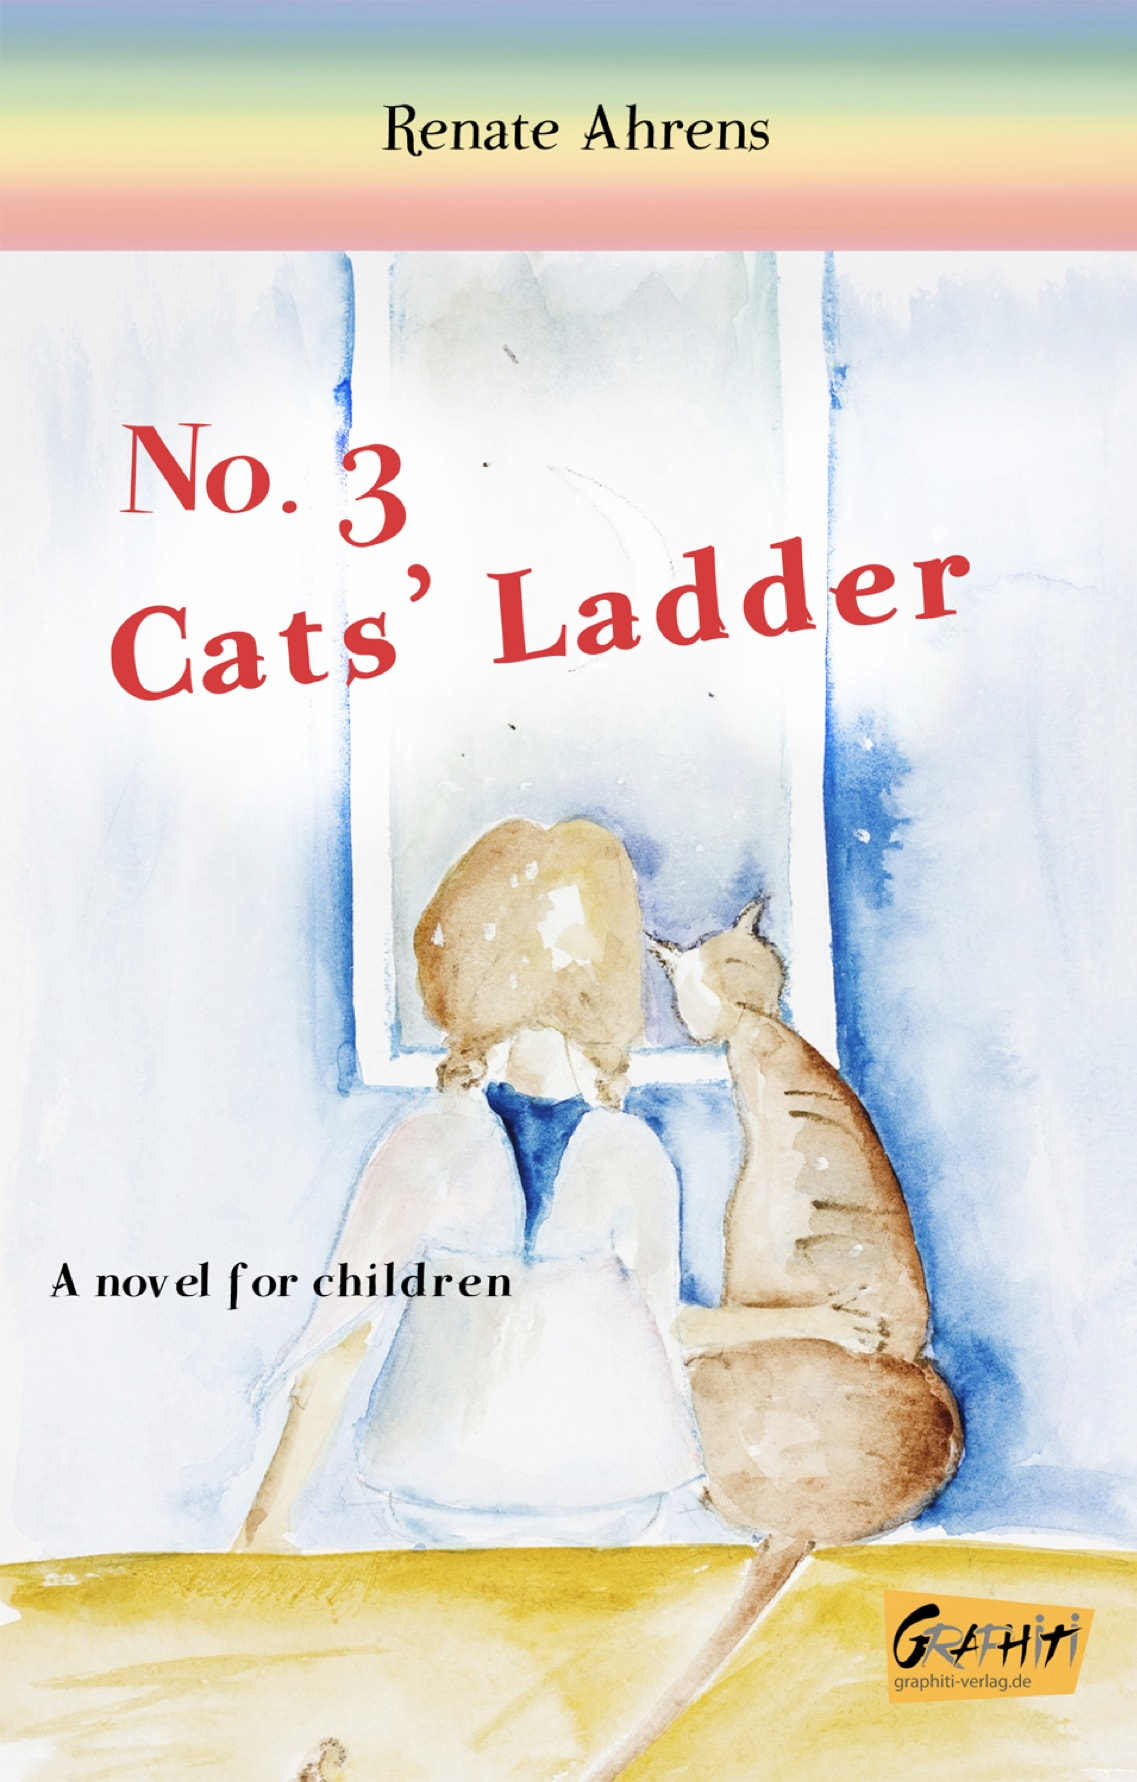 Renate Ahrens - Cats Ladder